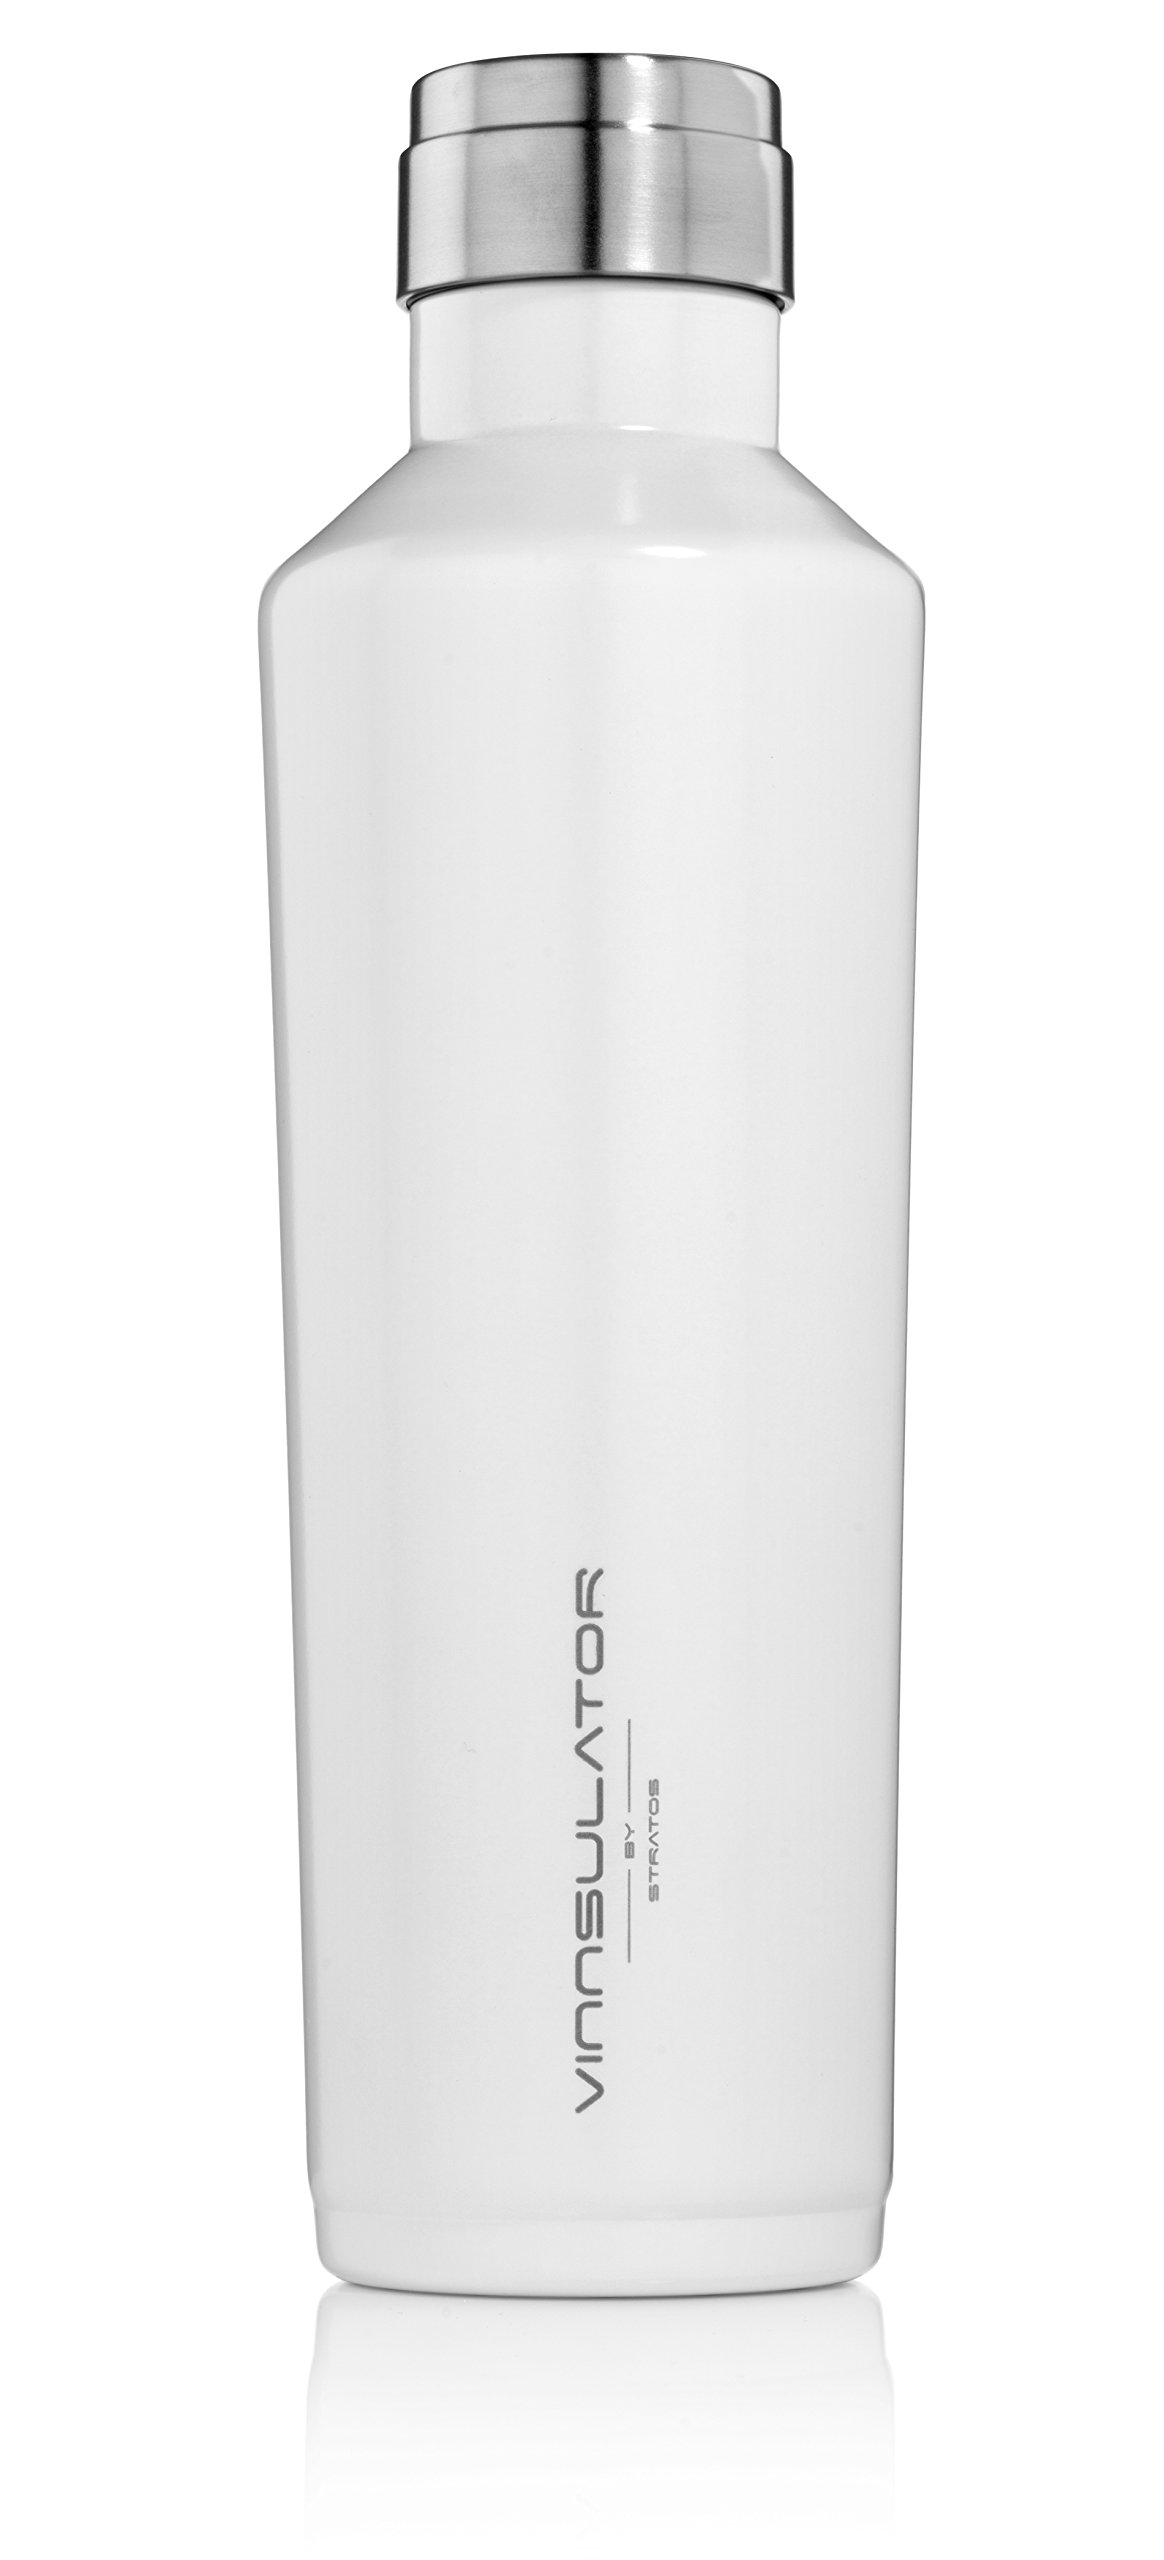 Vinnsulator Double Wall Insulated Tumbler Water Bottle & Thermos - Powder Coated & Heavy Duty Stainless Steel (White, 25 oz)